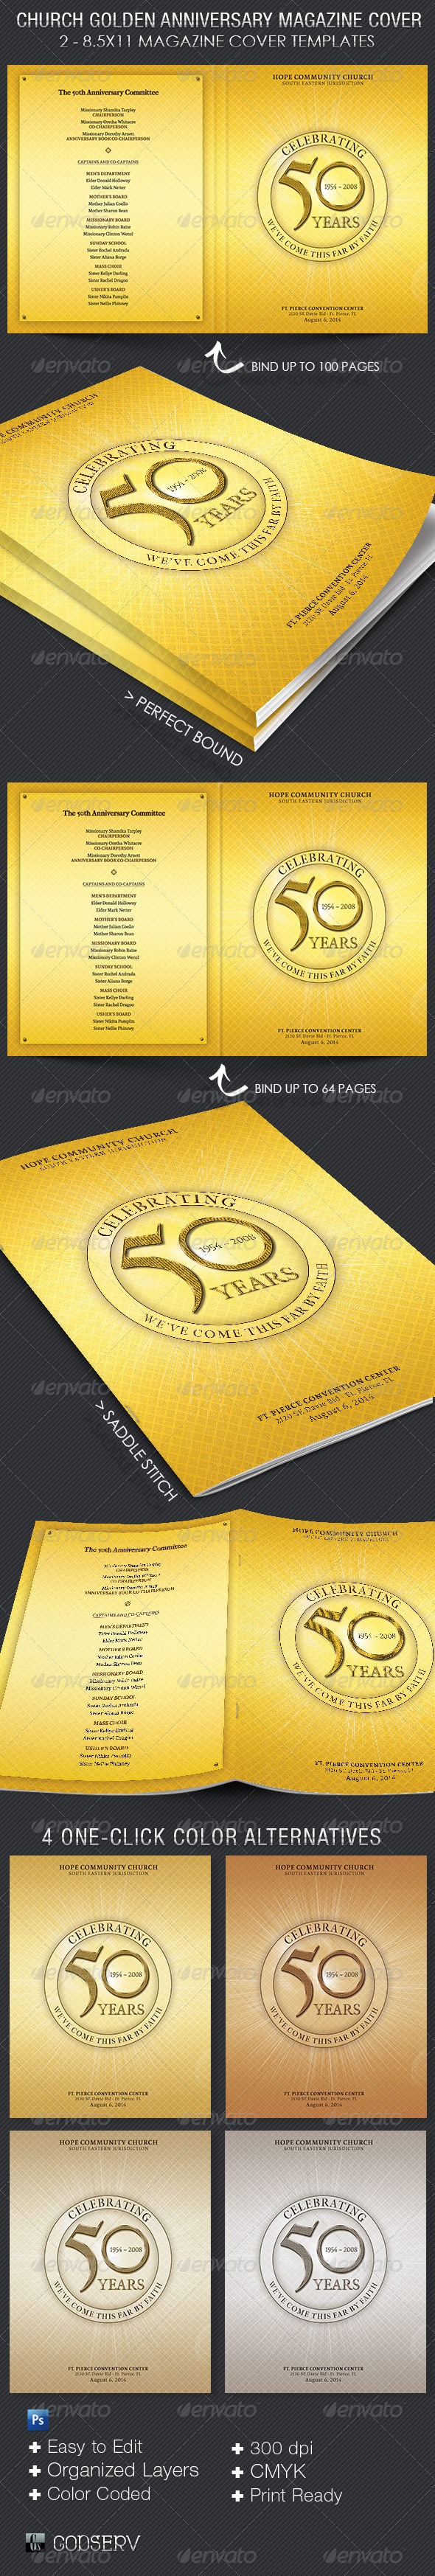 Church golden anniversary magazine cover template on behance both saddle stitch and perfect bound setup is included sold exclusively on graphicriver this template is convenient all you need to do is edit maxwellsz